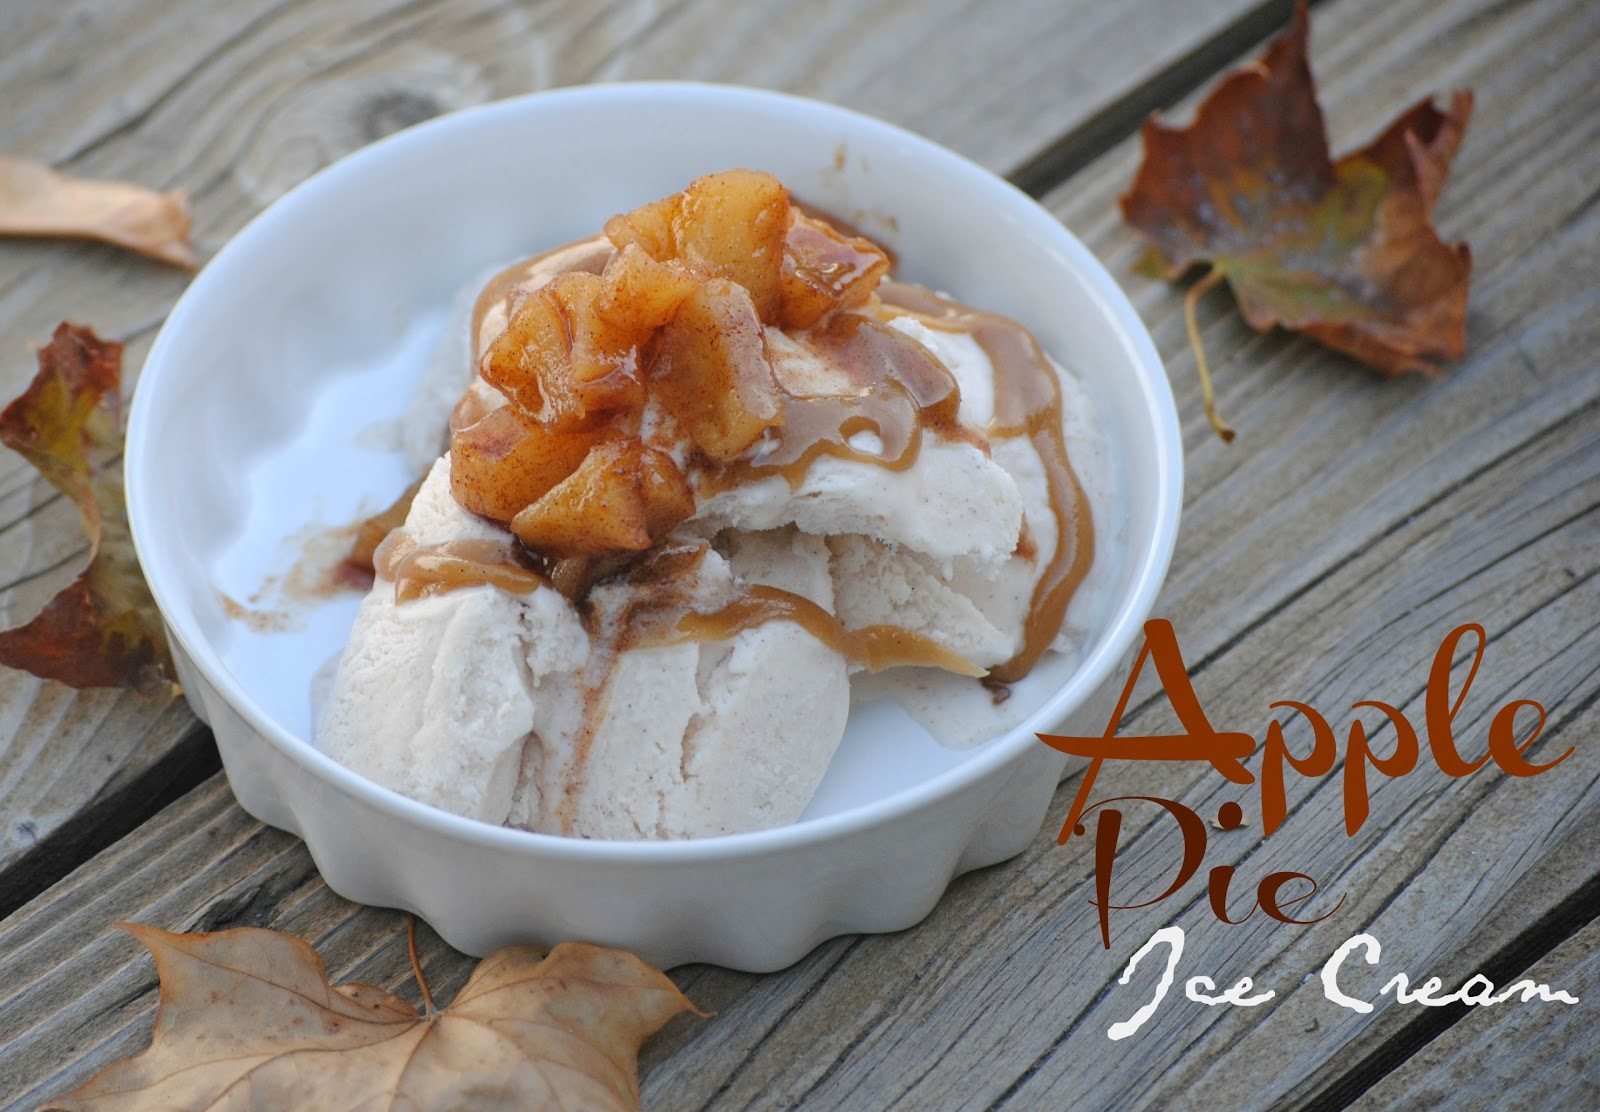 The Farm Girl Recipes: Apple Pie Ice Cream